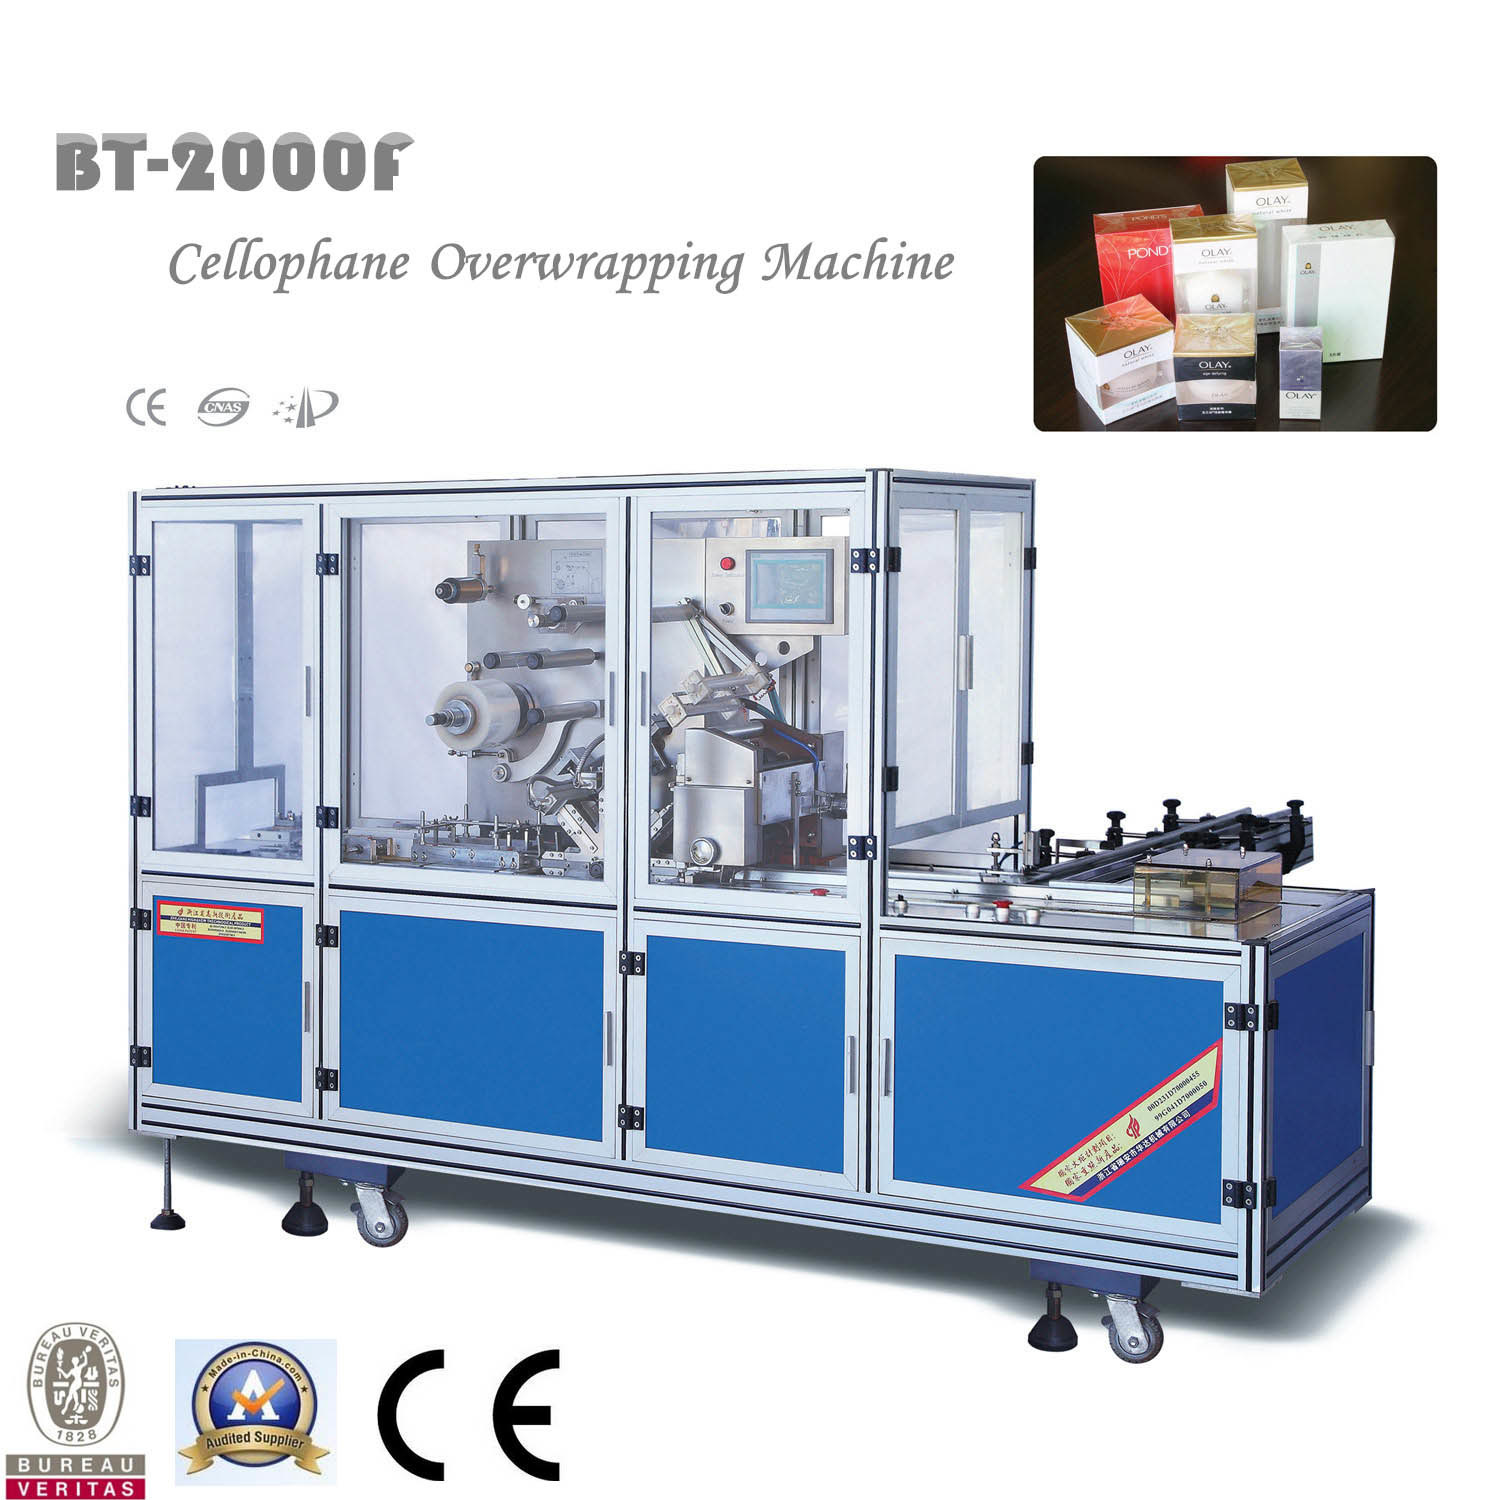 Cigarette Box Overwrapping Machine (BT-2000F)